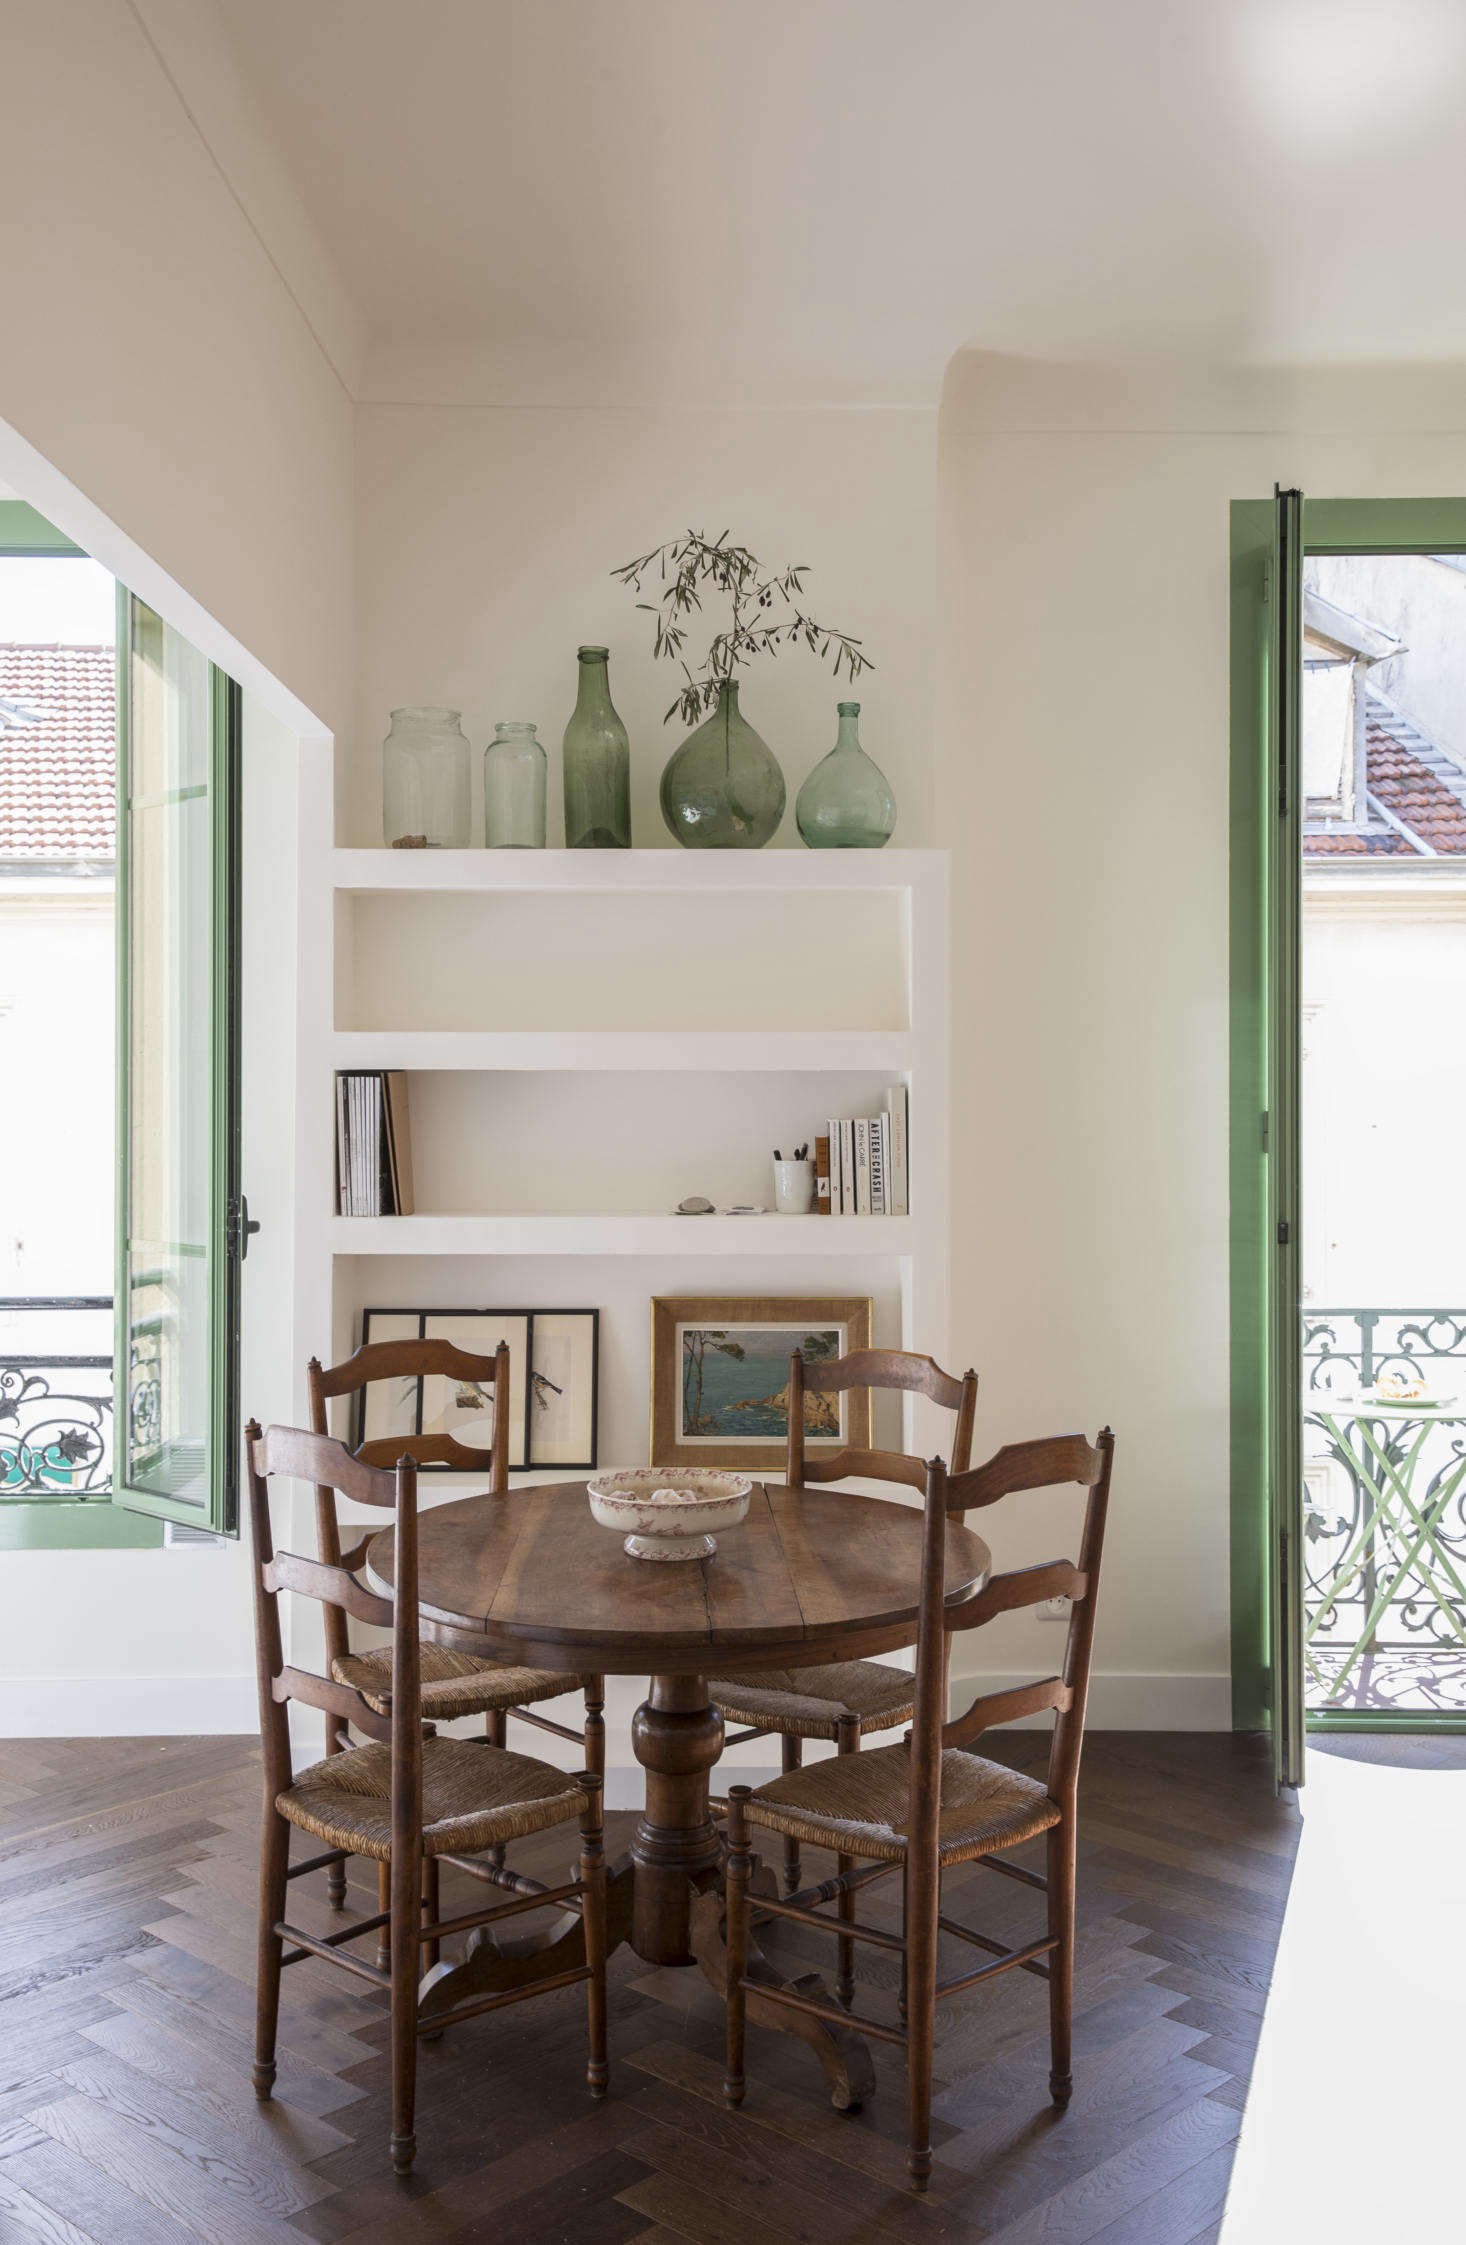 The Six-Month Remodel: An Airy Flat in Nice Gets a New Lease on Life